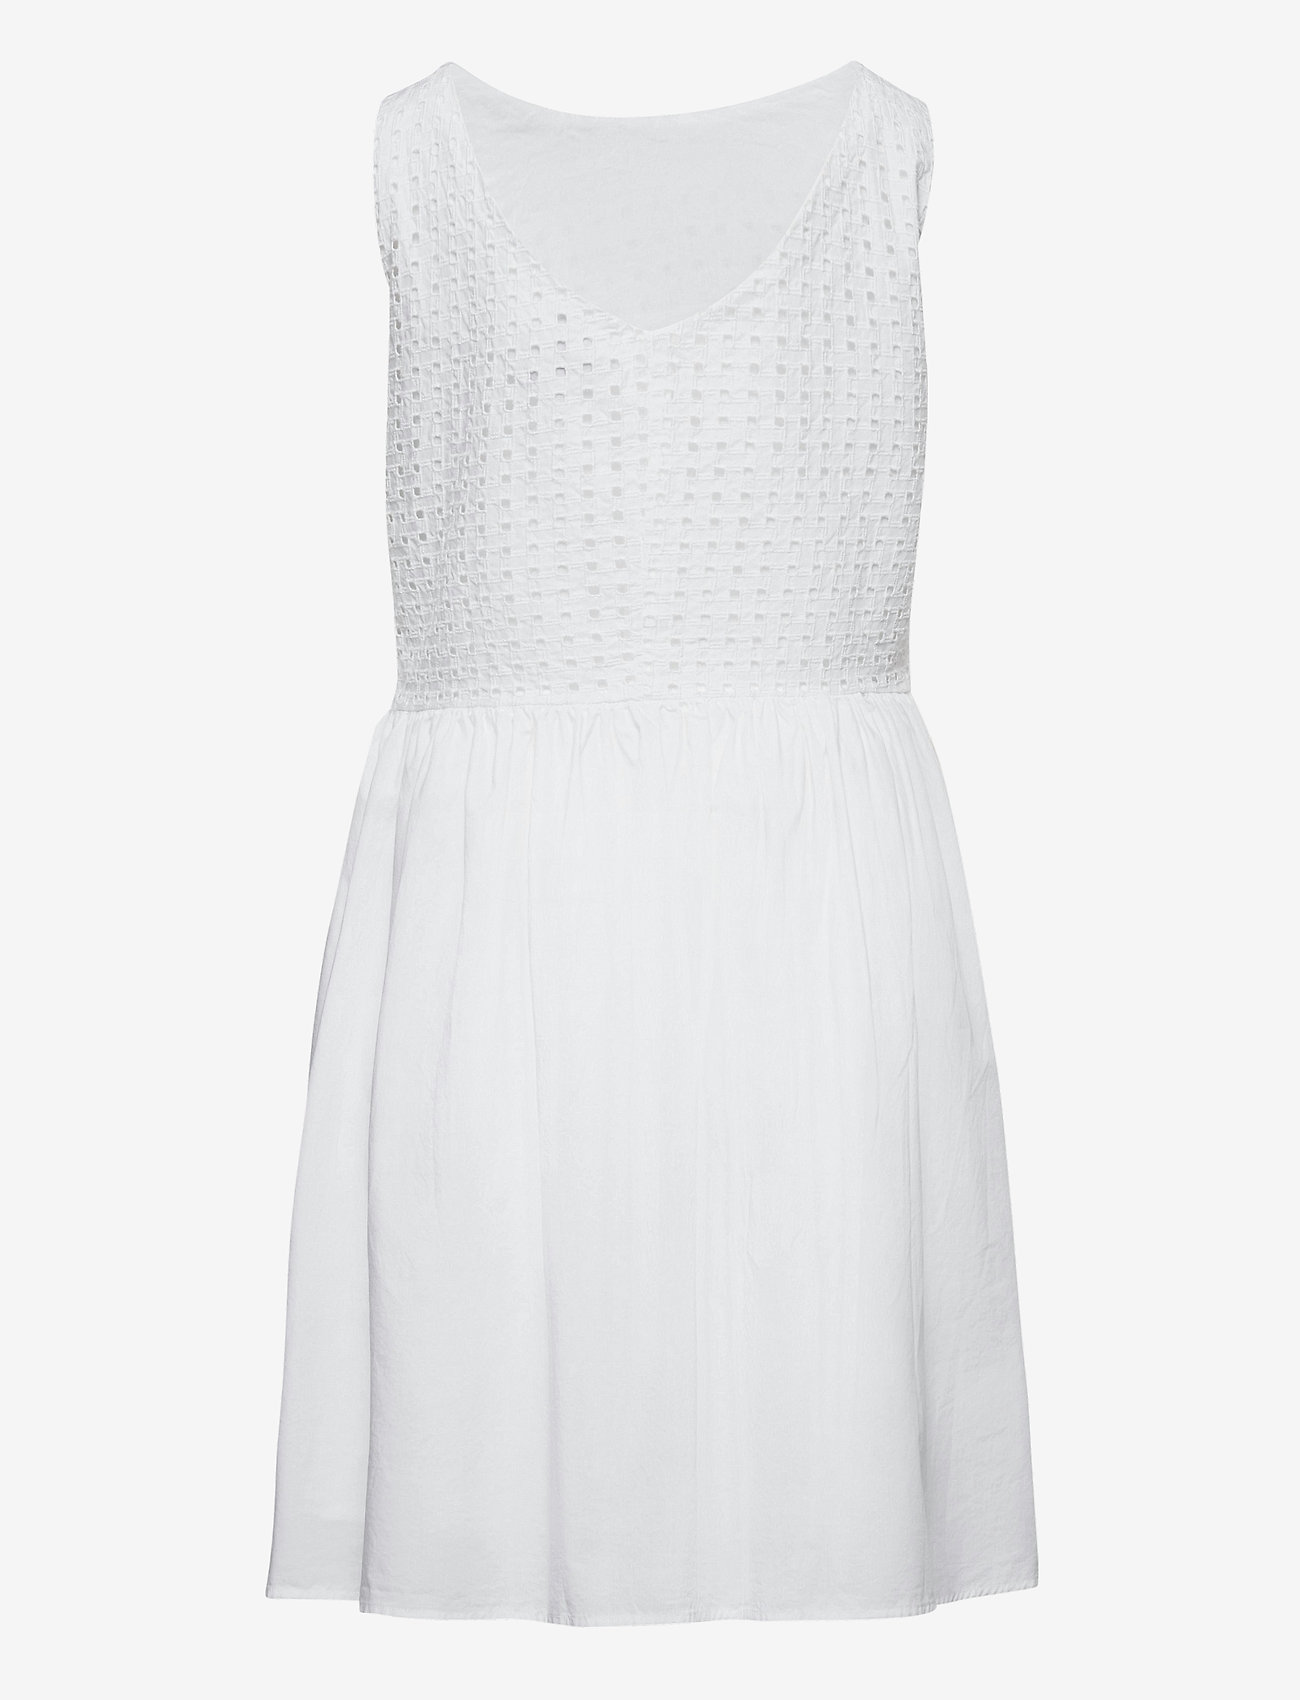 GANT - TG. BROIDERIE ANGLAISE DRESS - kleider - white - 1